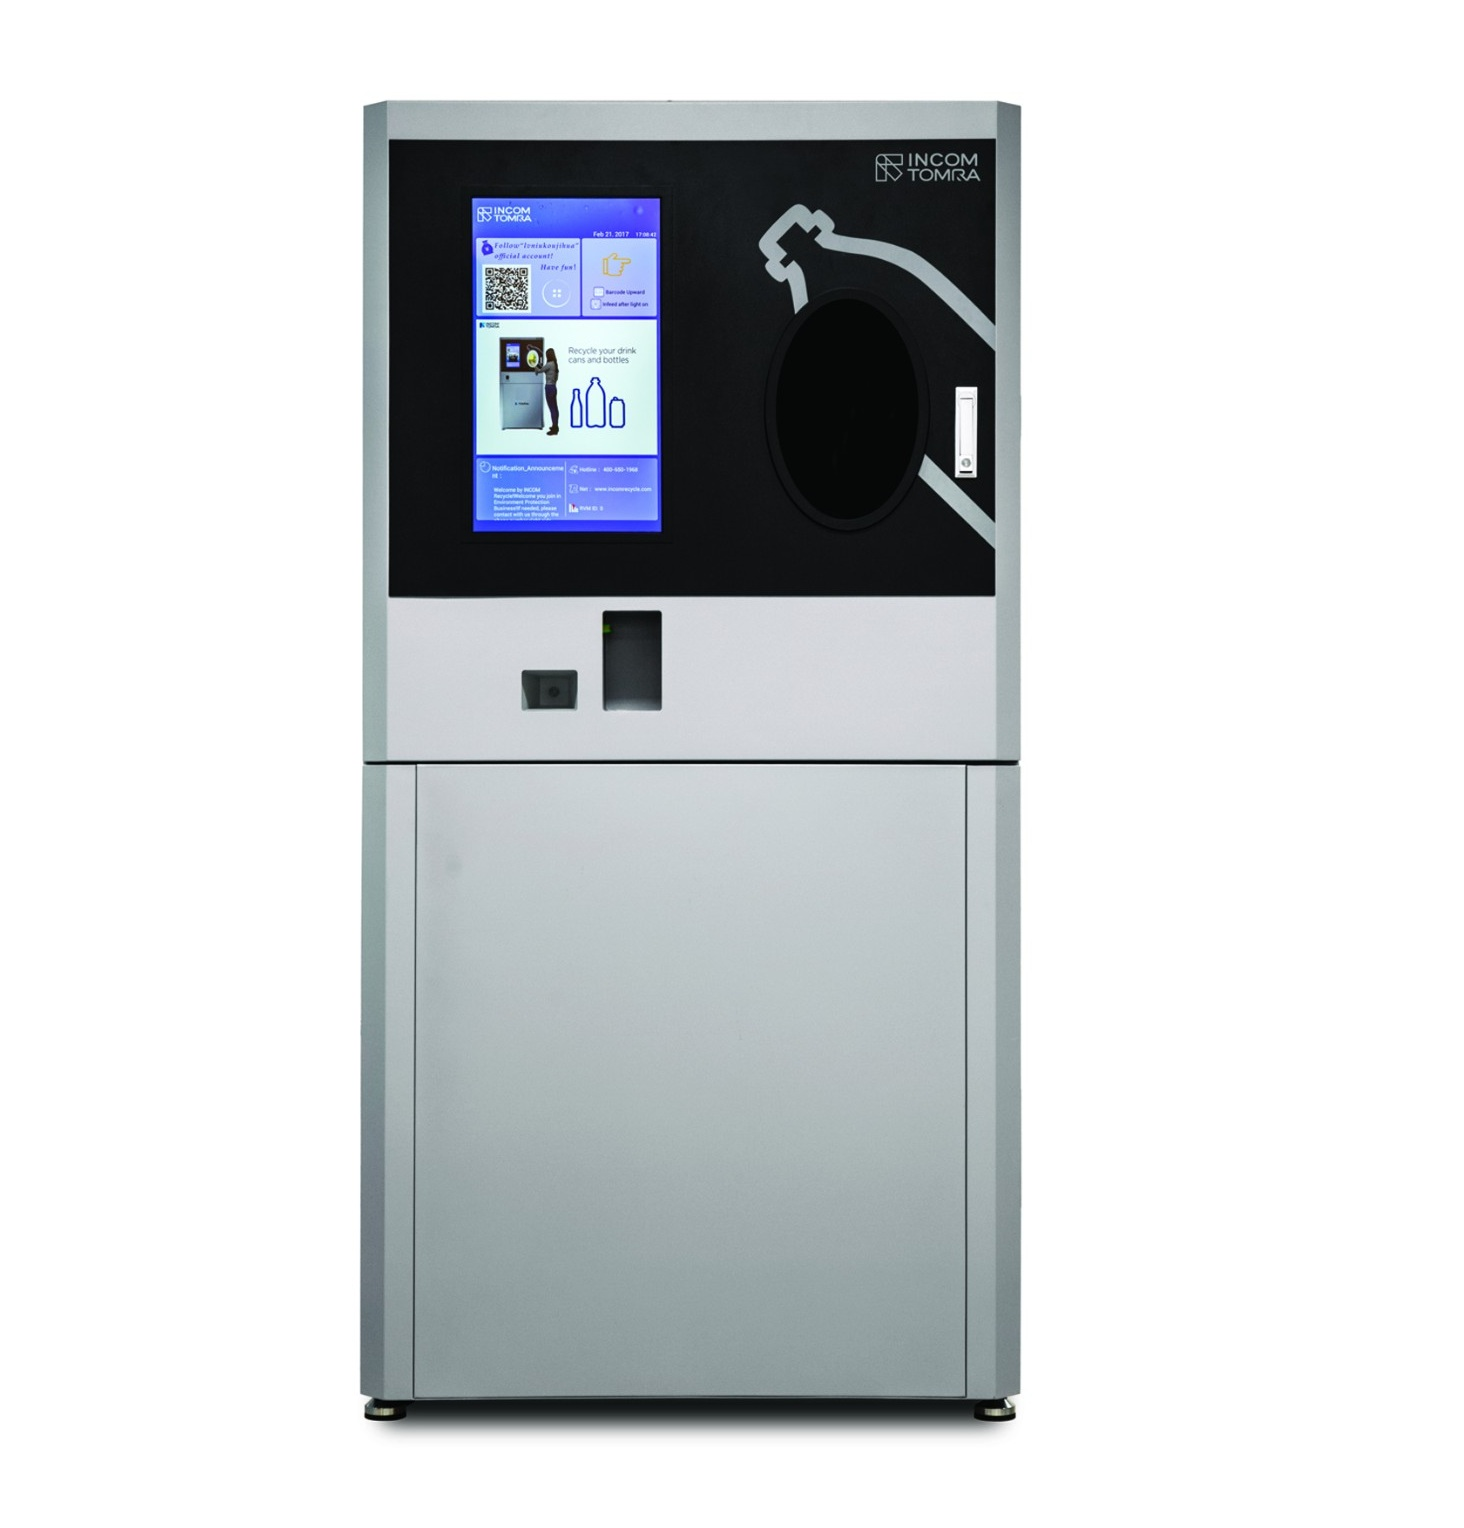 Incom Tomra Reverse Vending Machine for beverage containers recycle